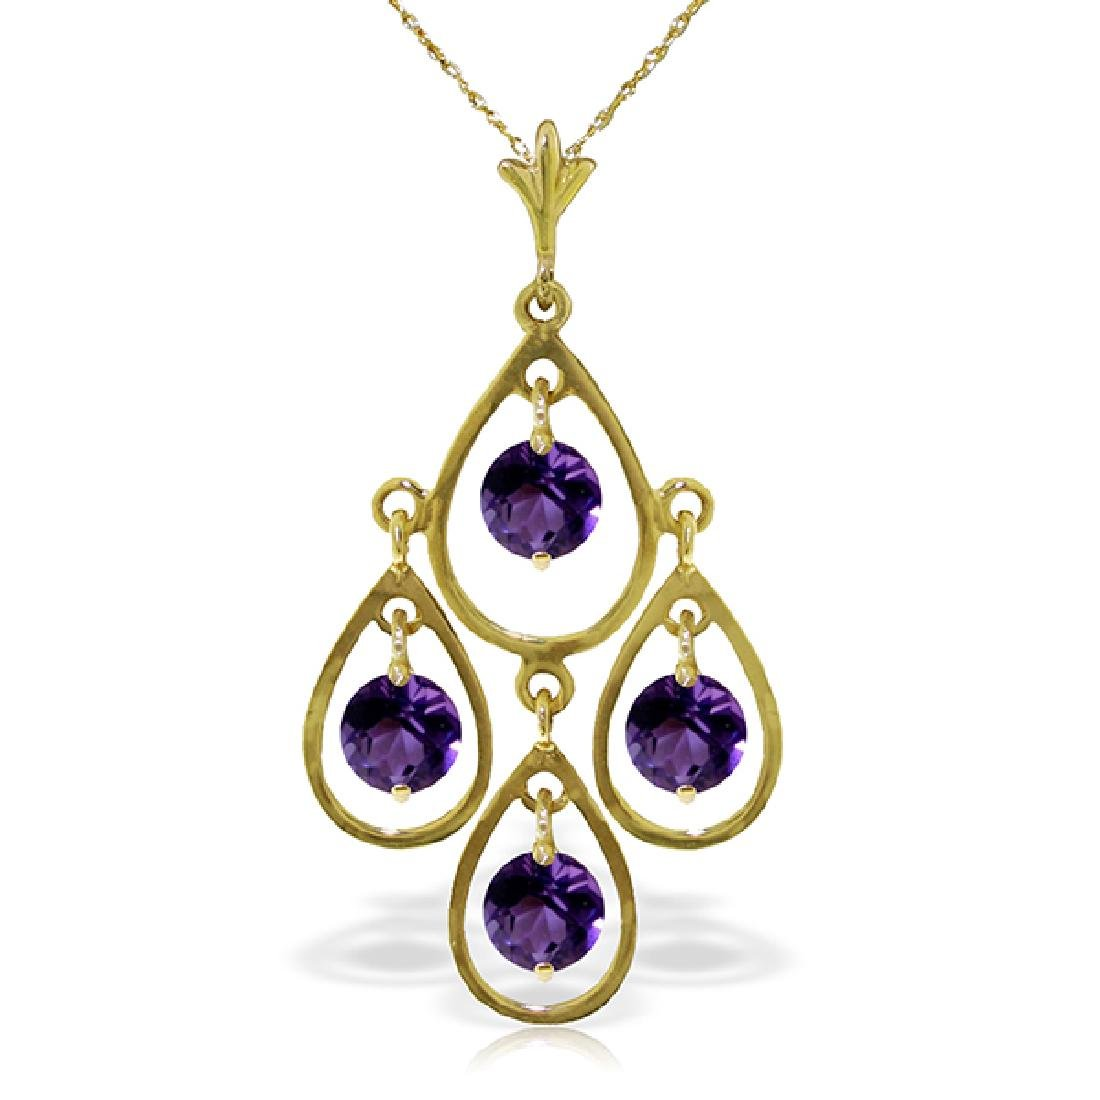 Genuine 1.20 ctw Amethyst Necklace Jewelry 14KT Yellow